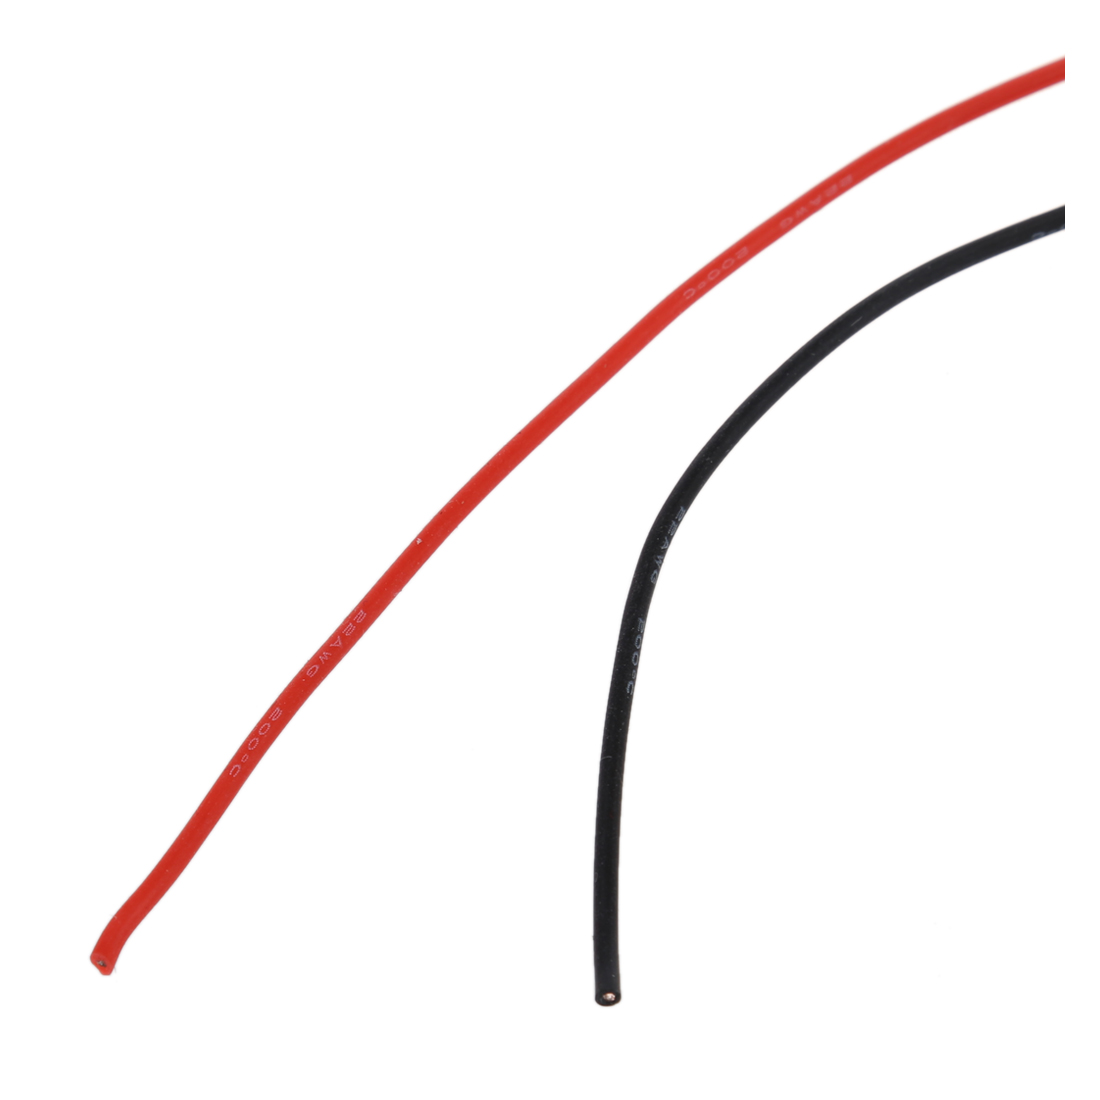 2x 3m 22 Gauge Awg Silicone Rubber Wire Cable Red Black